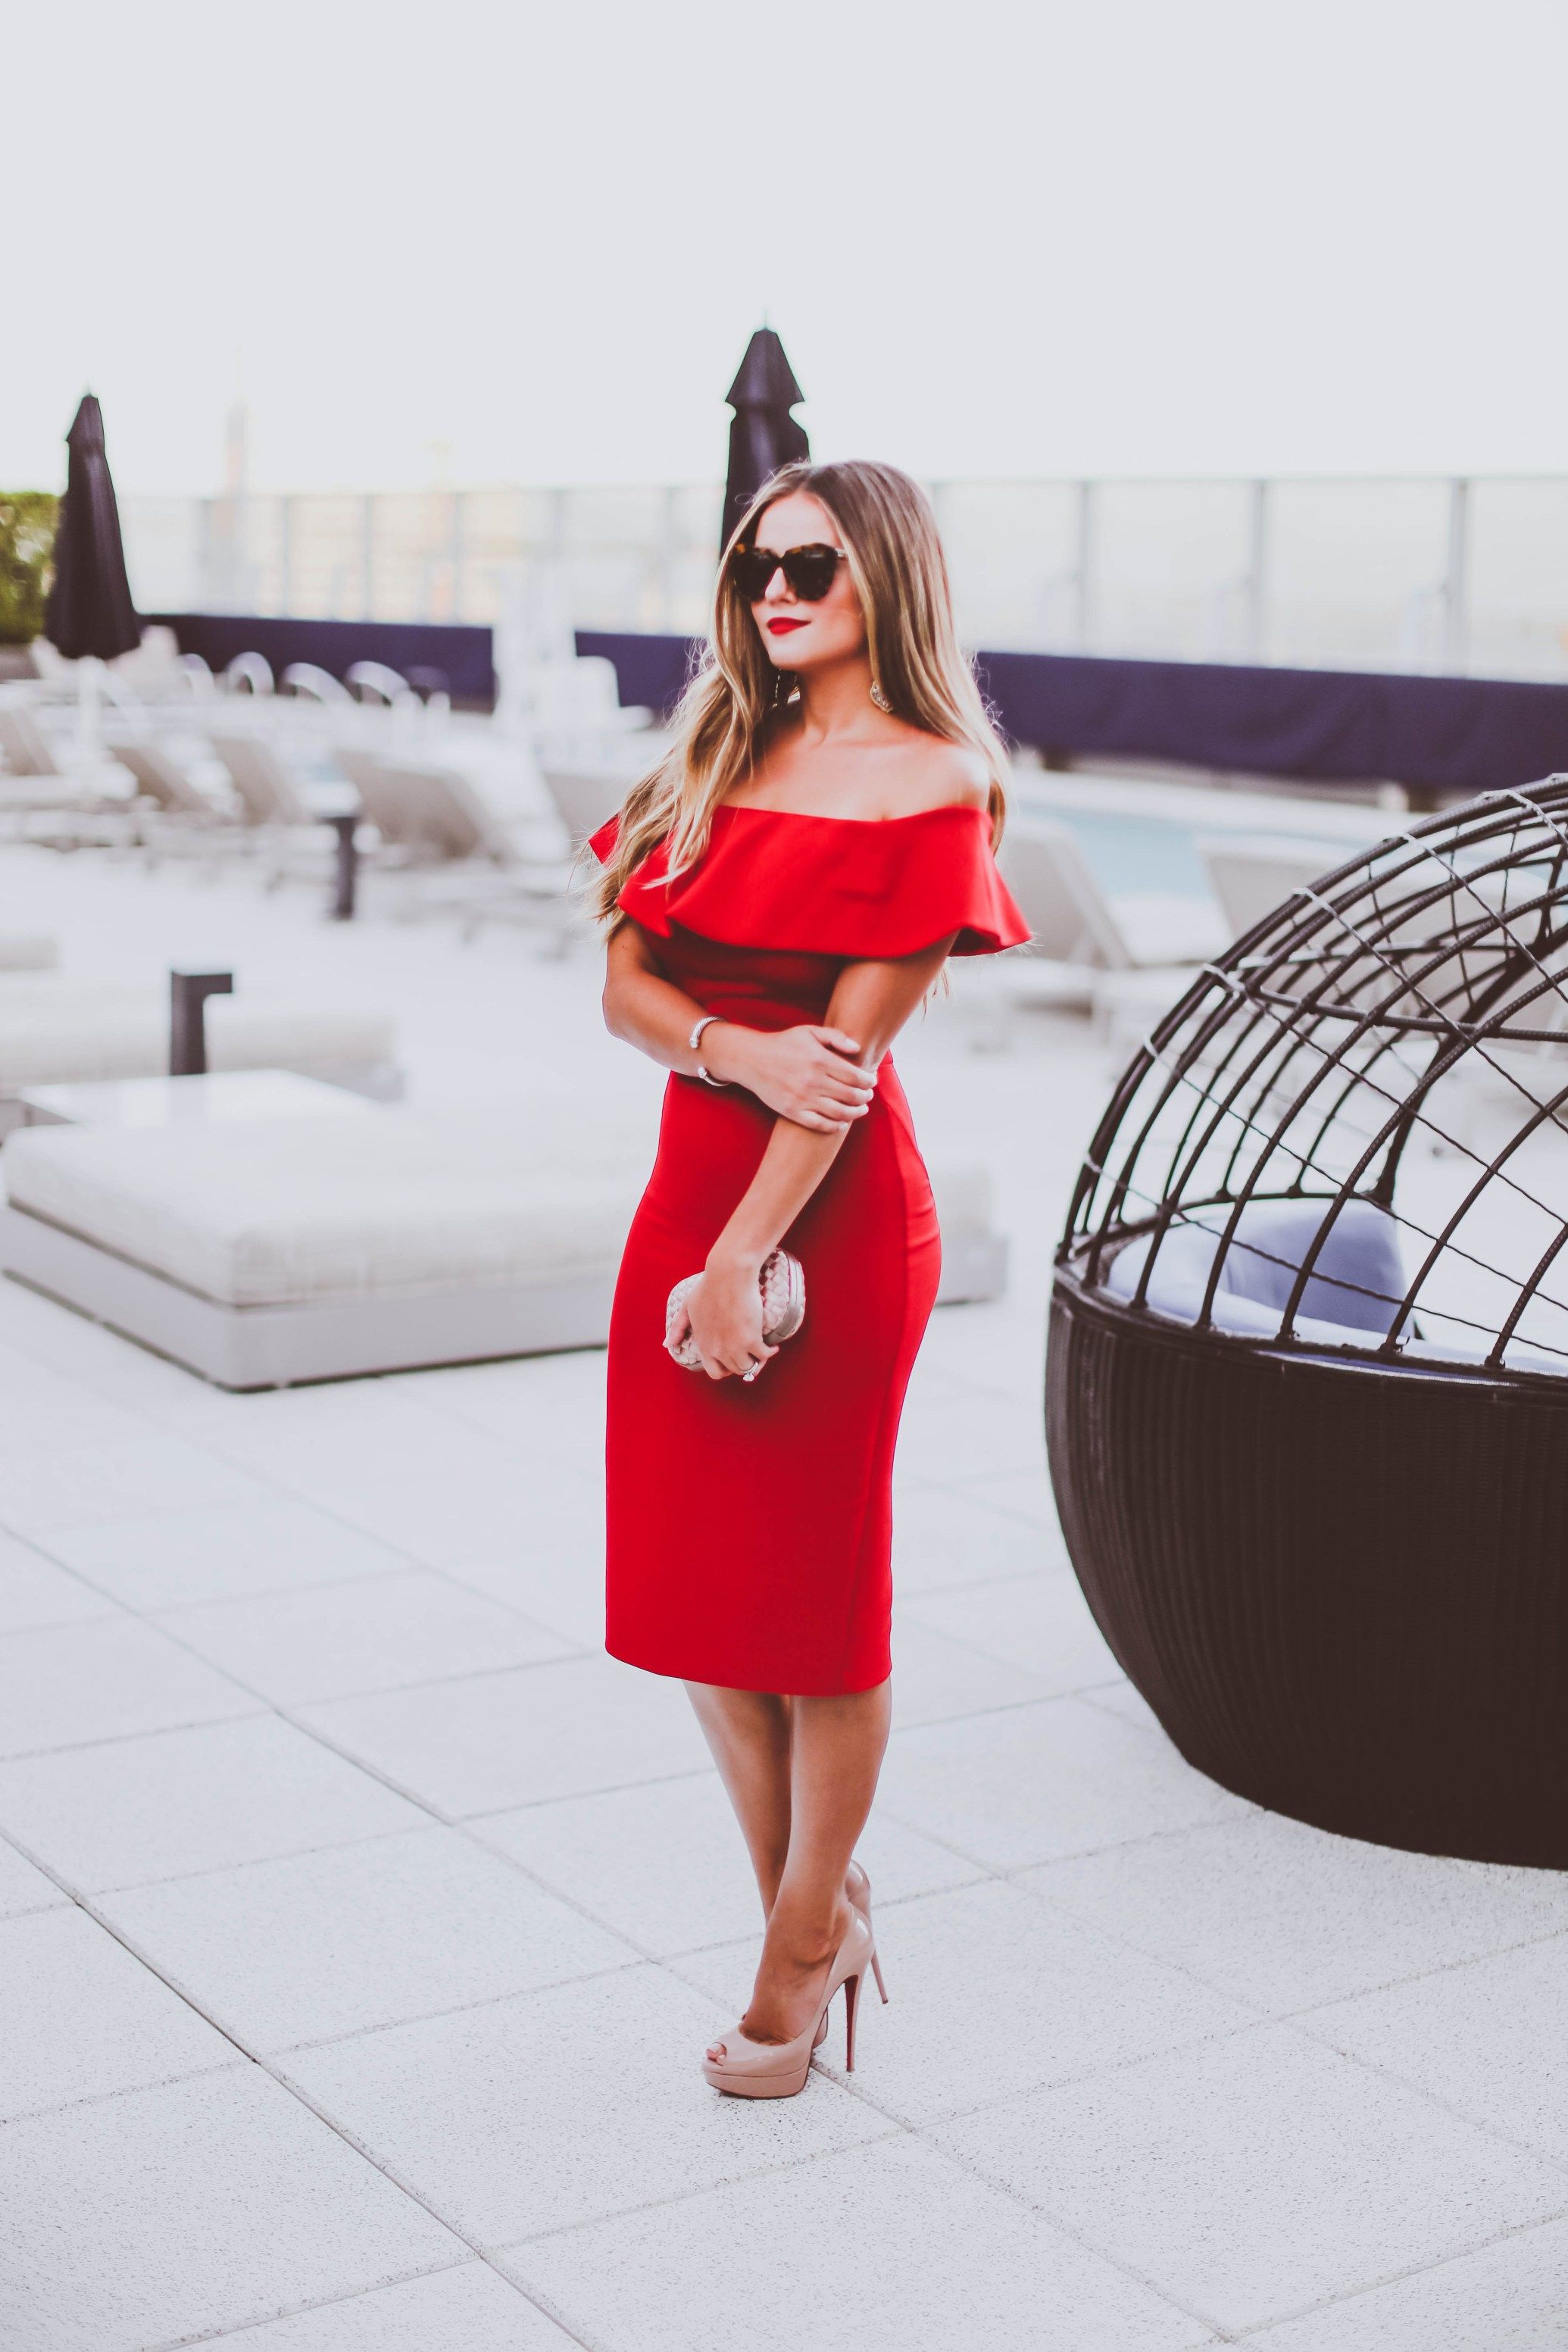 64306e58b26d OOTD // Date Night in a Red Off-the-Shoulder Dress | colors | Kleider